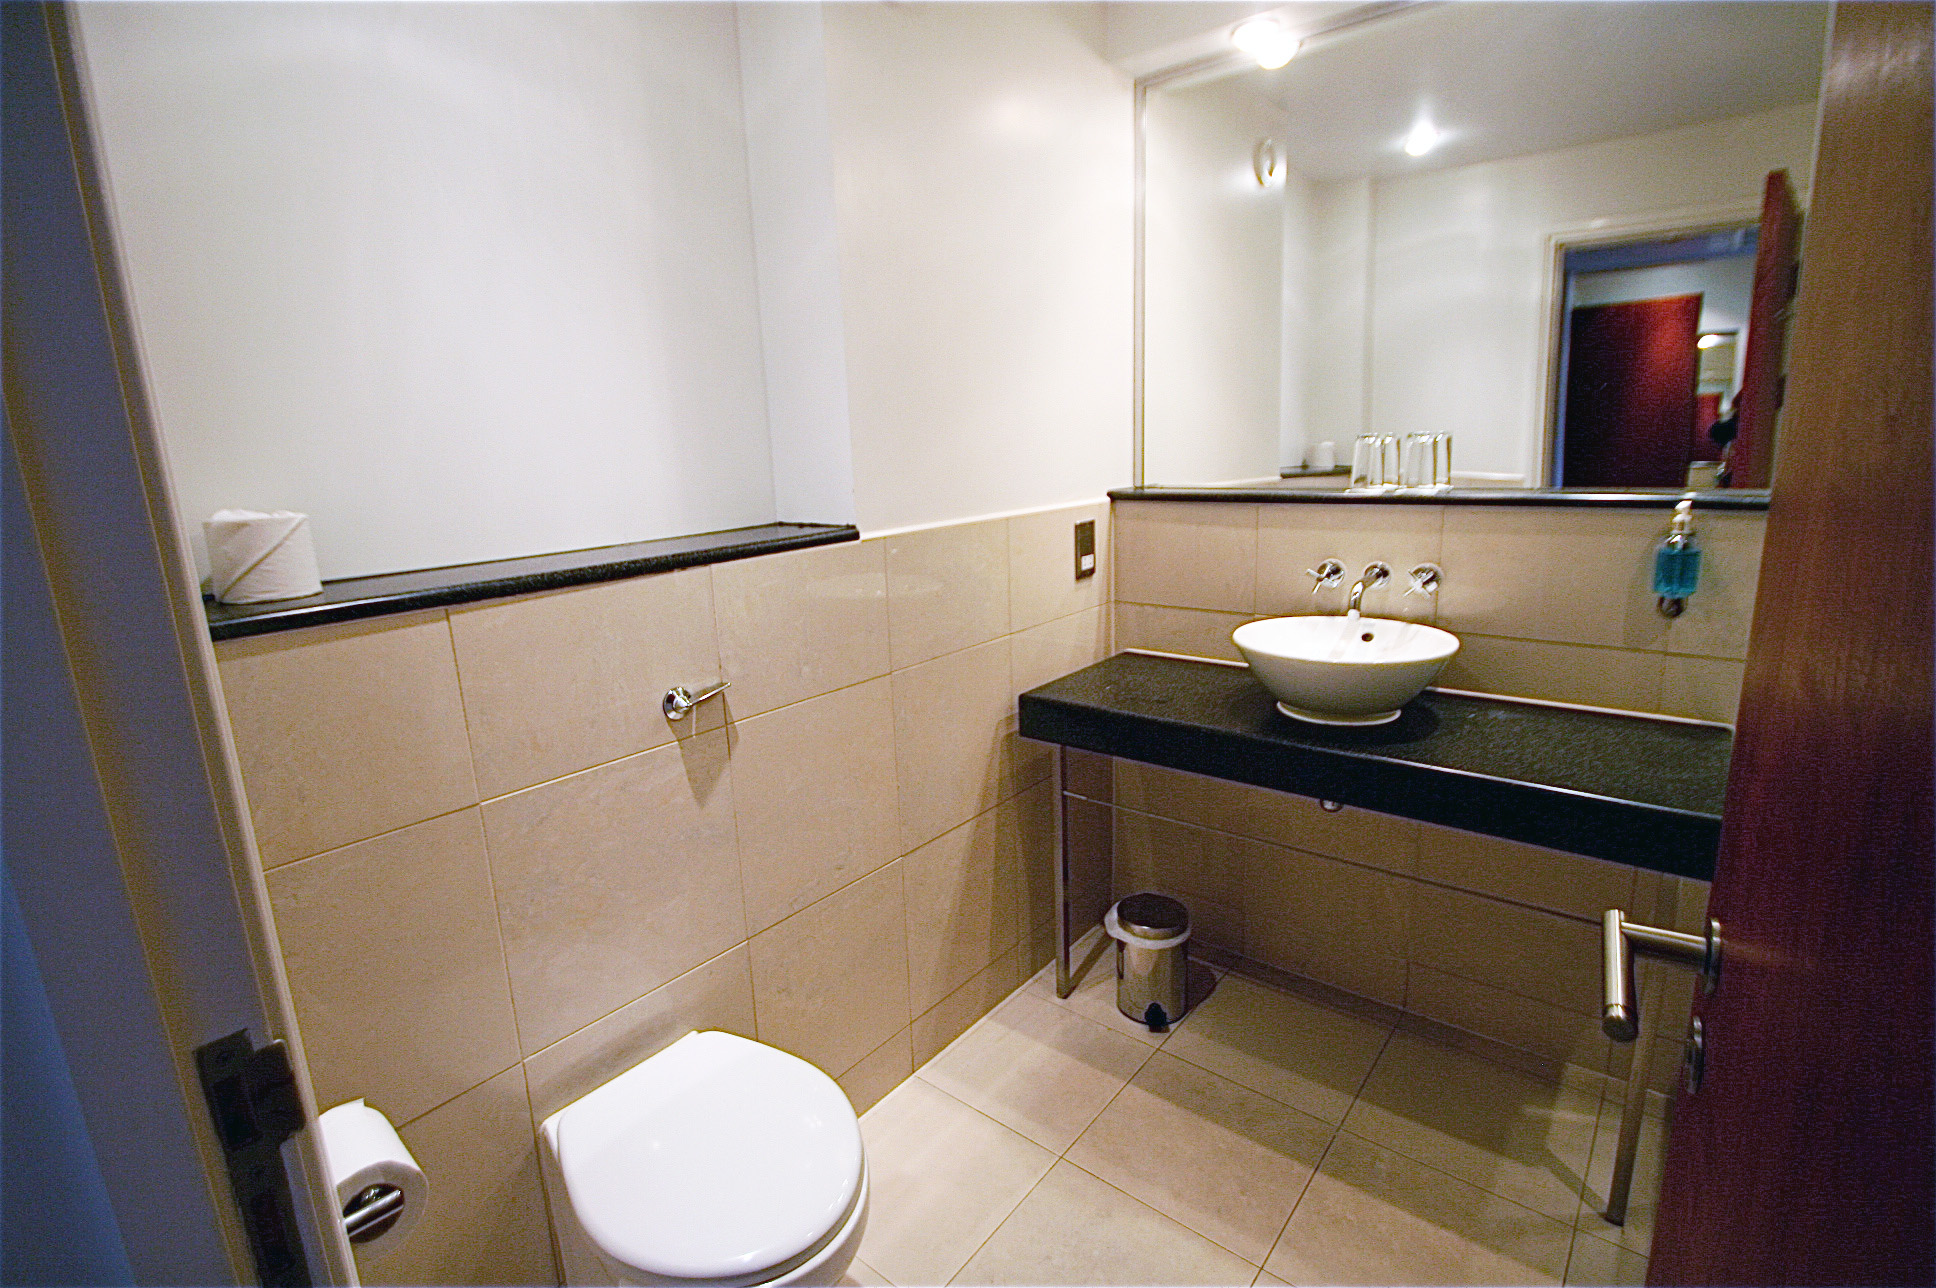 Design Hotel Bathrooms Why So Little Thought Moregeous